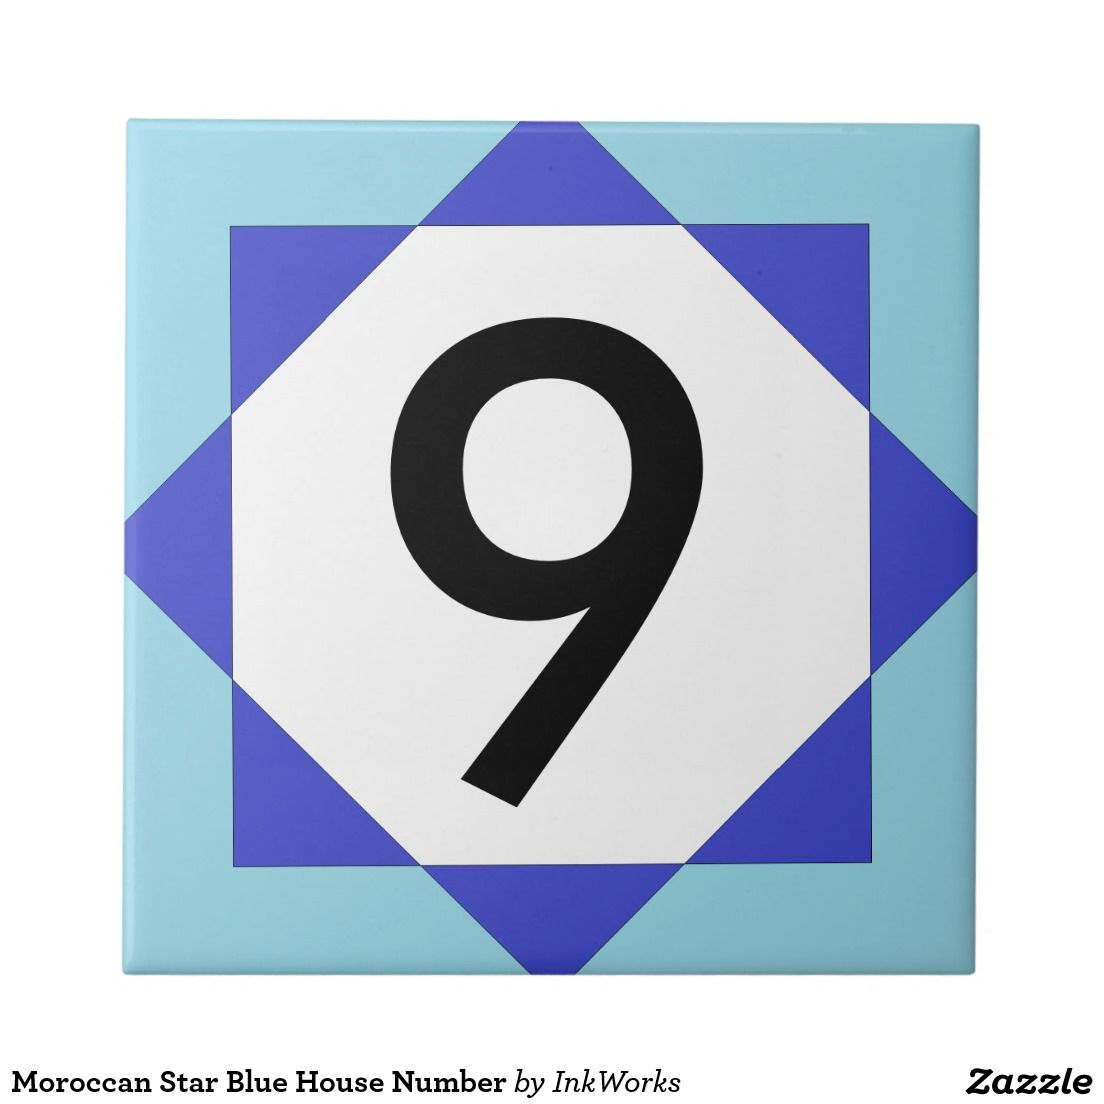 Moroccan star blue house number ceramic tile number and letter moroccan star blue house number ceramic tile dailygadgetfo Choice Image